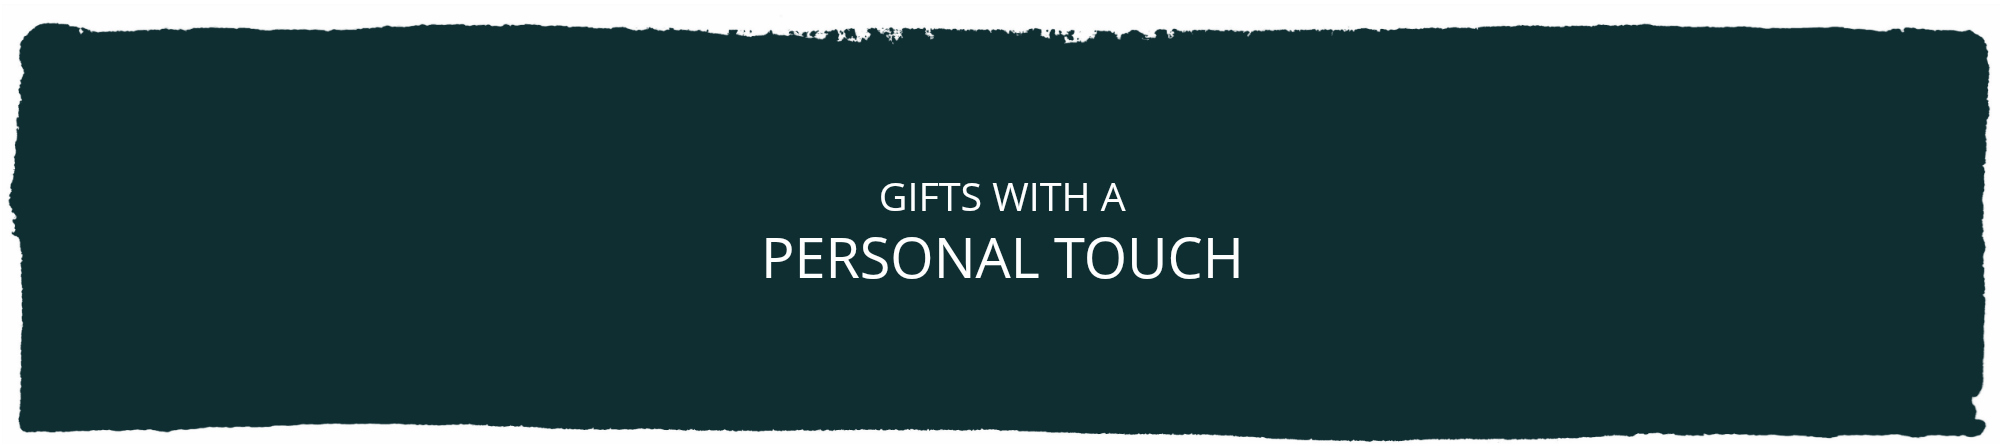 Gifts- Personal Touch.jpg